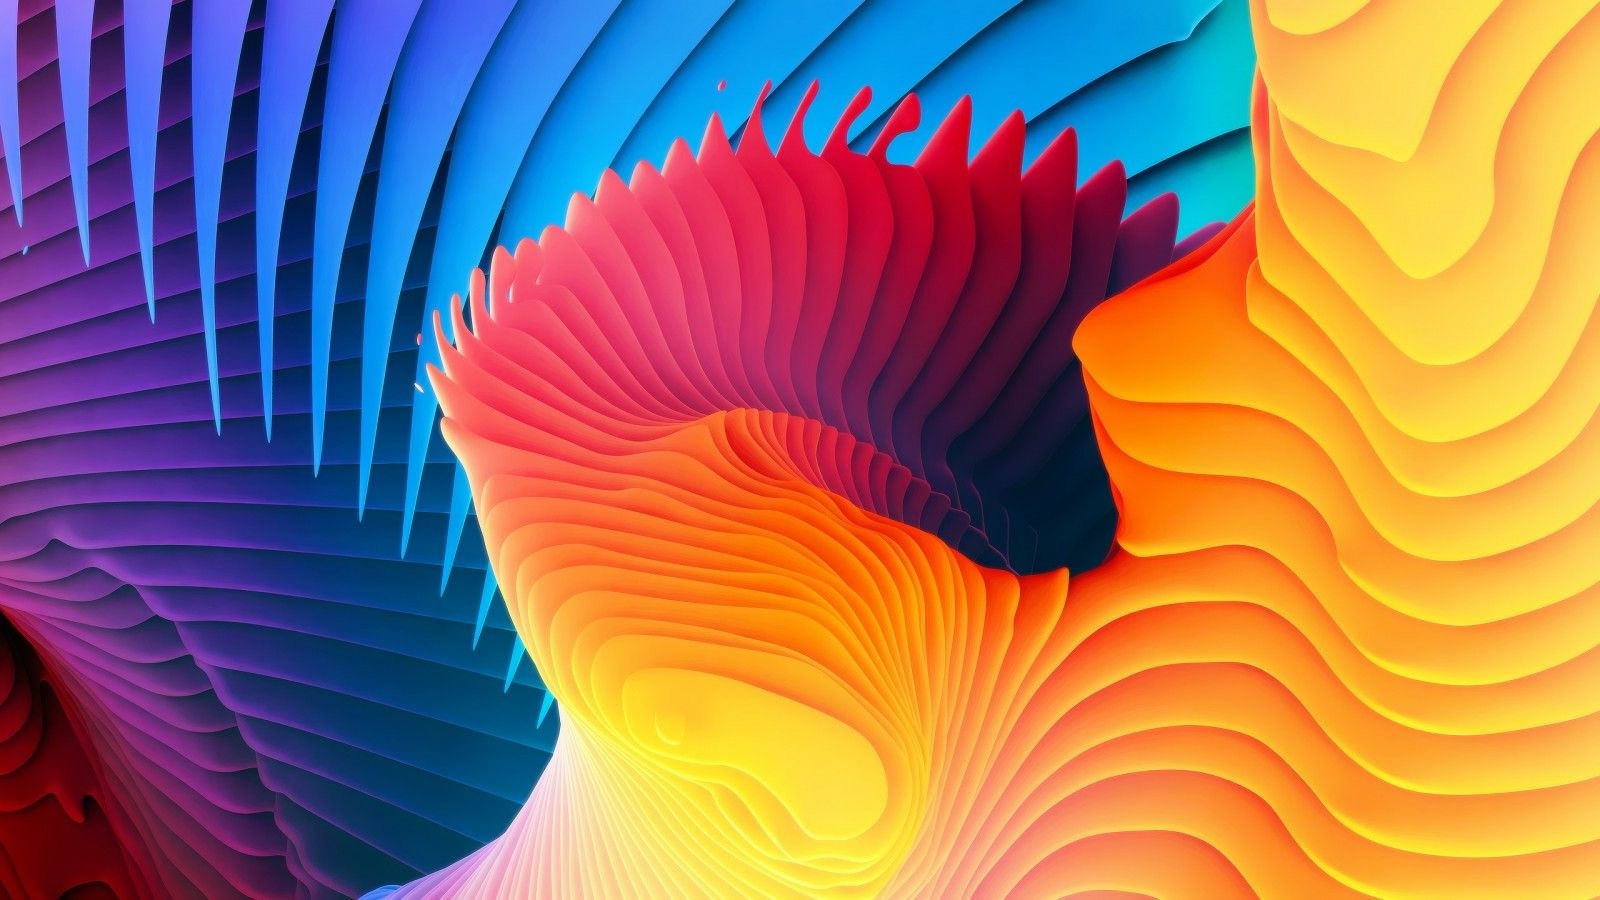 Abstract HD Fluid Spiral Waves wallpapers Macbook pro